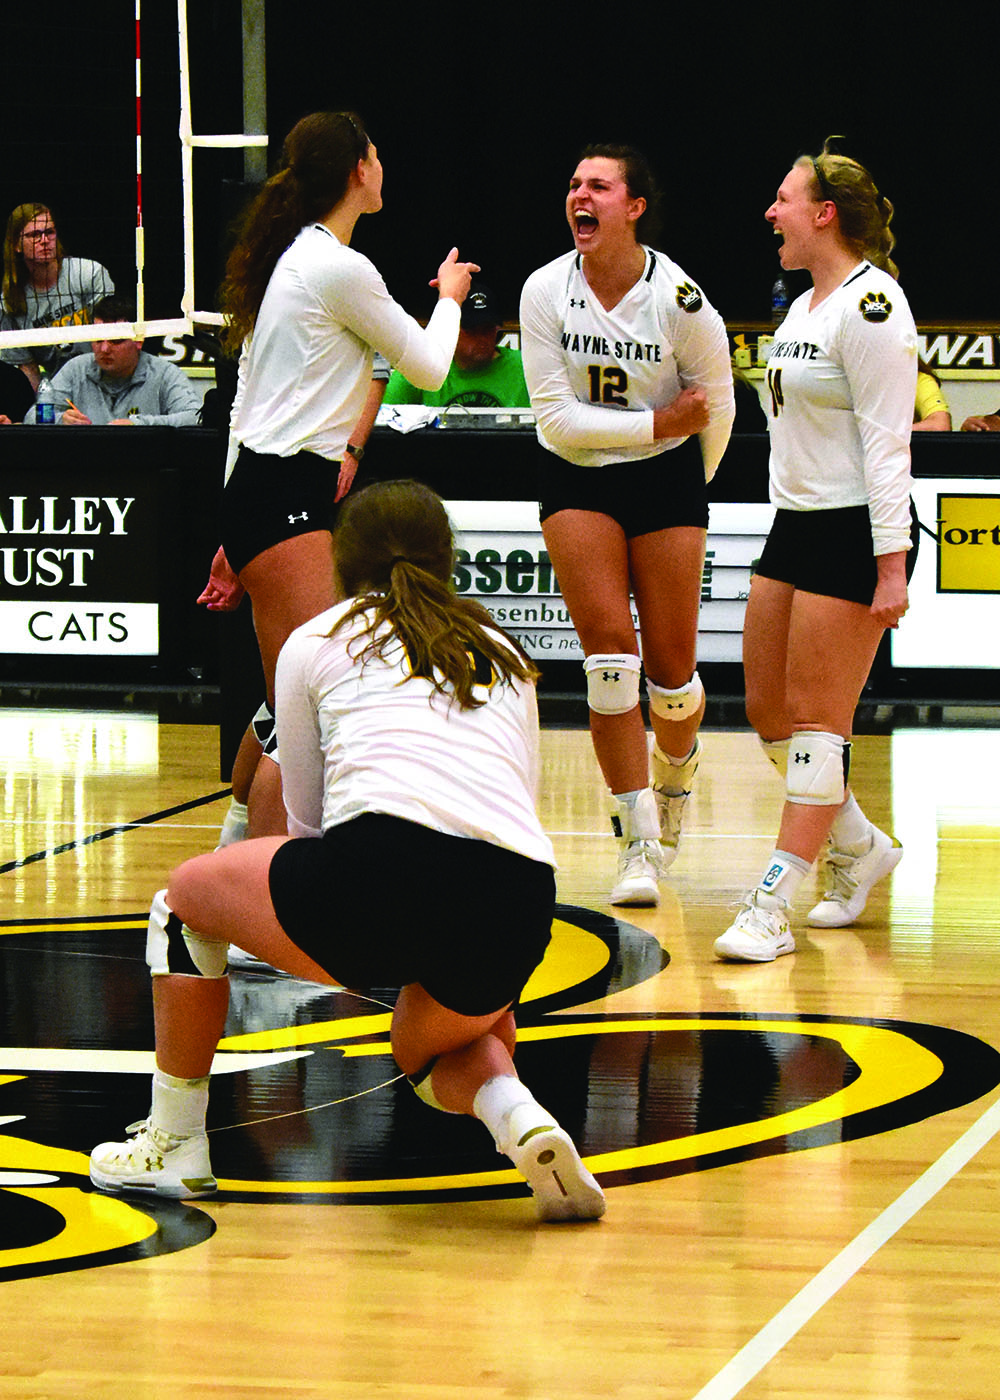 Volleyball continuing to rake up victories